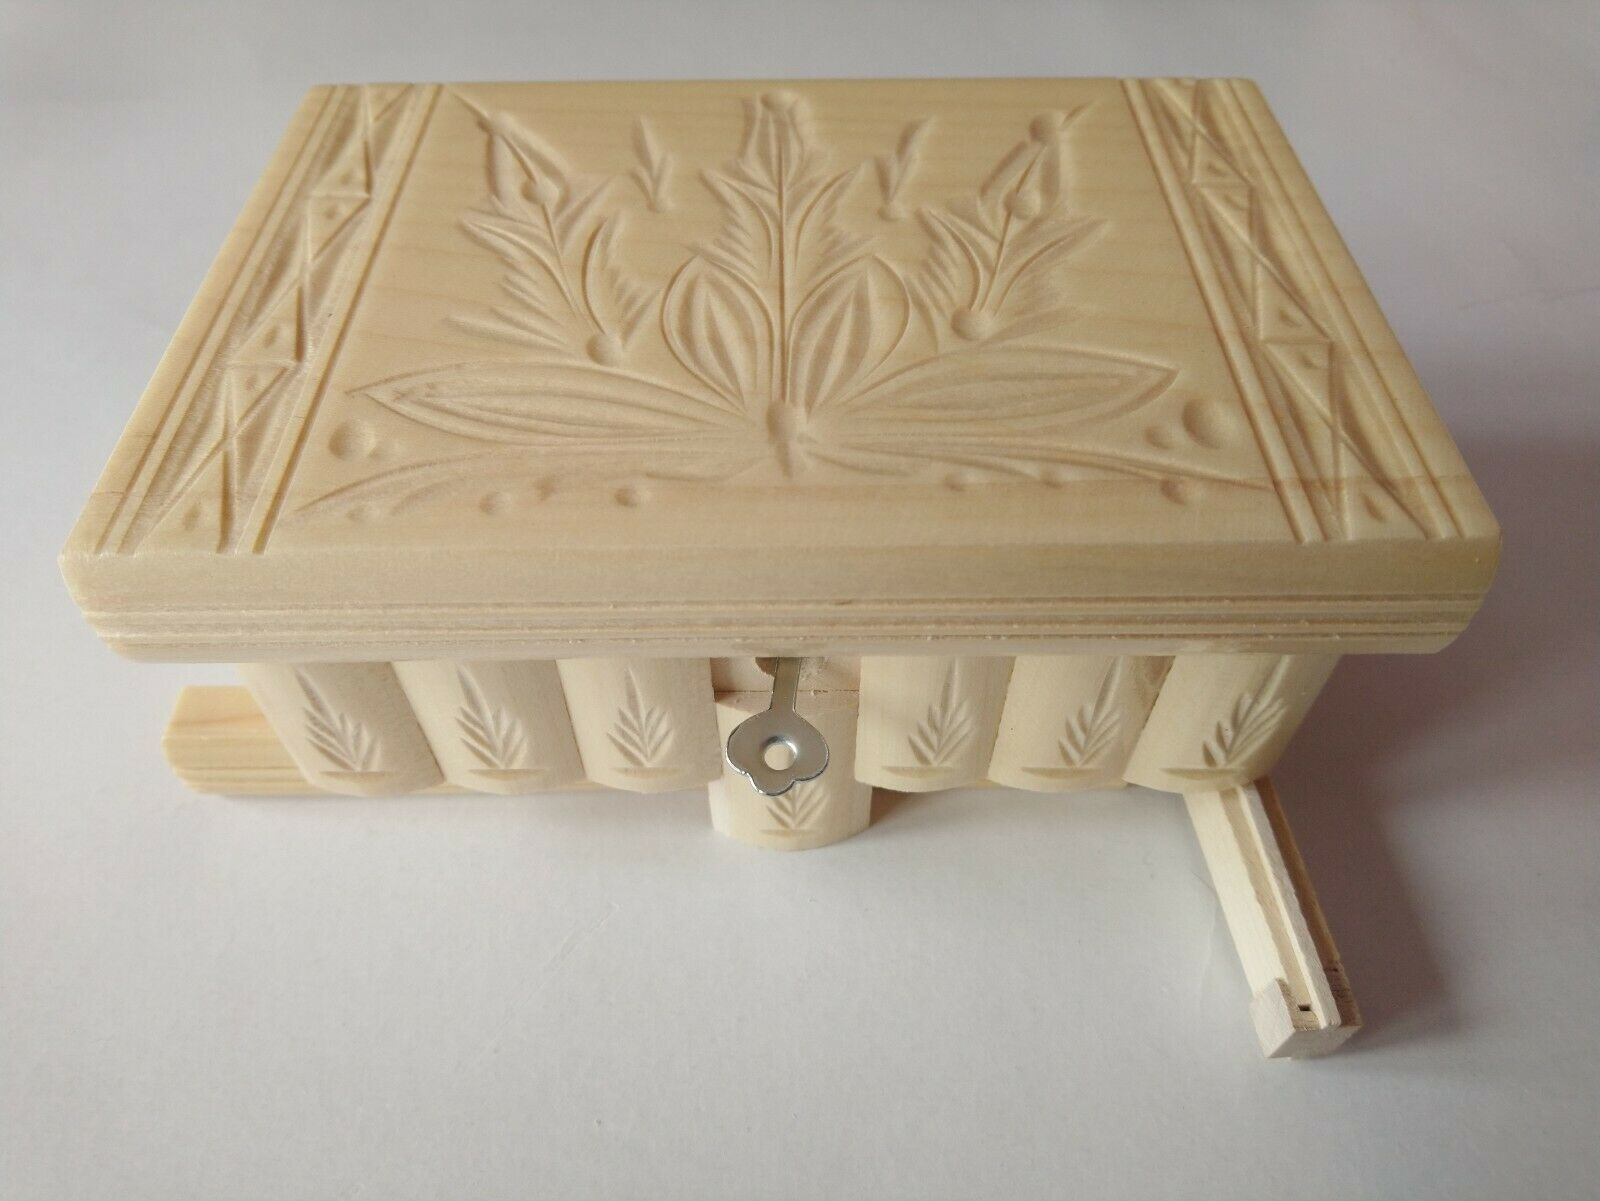 New natural wooden wizard jewelry puzzle magic box brain teaser trinket case